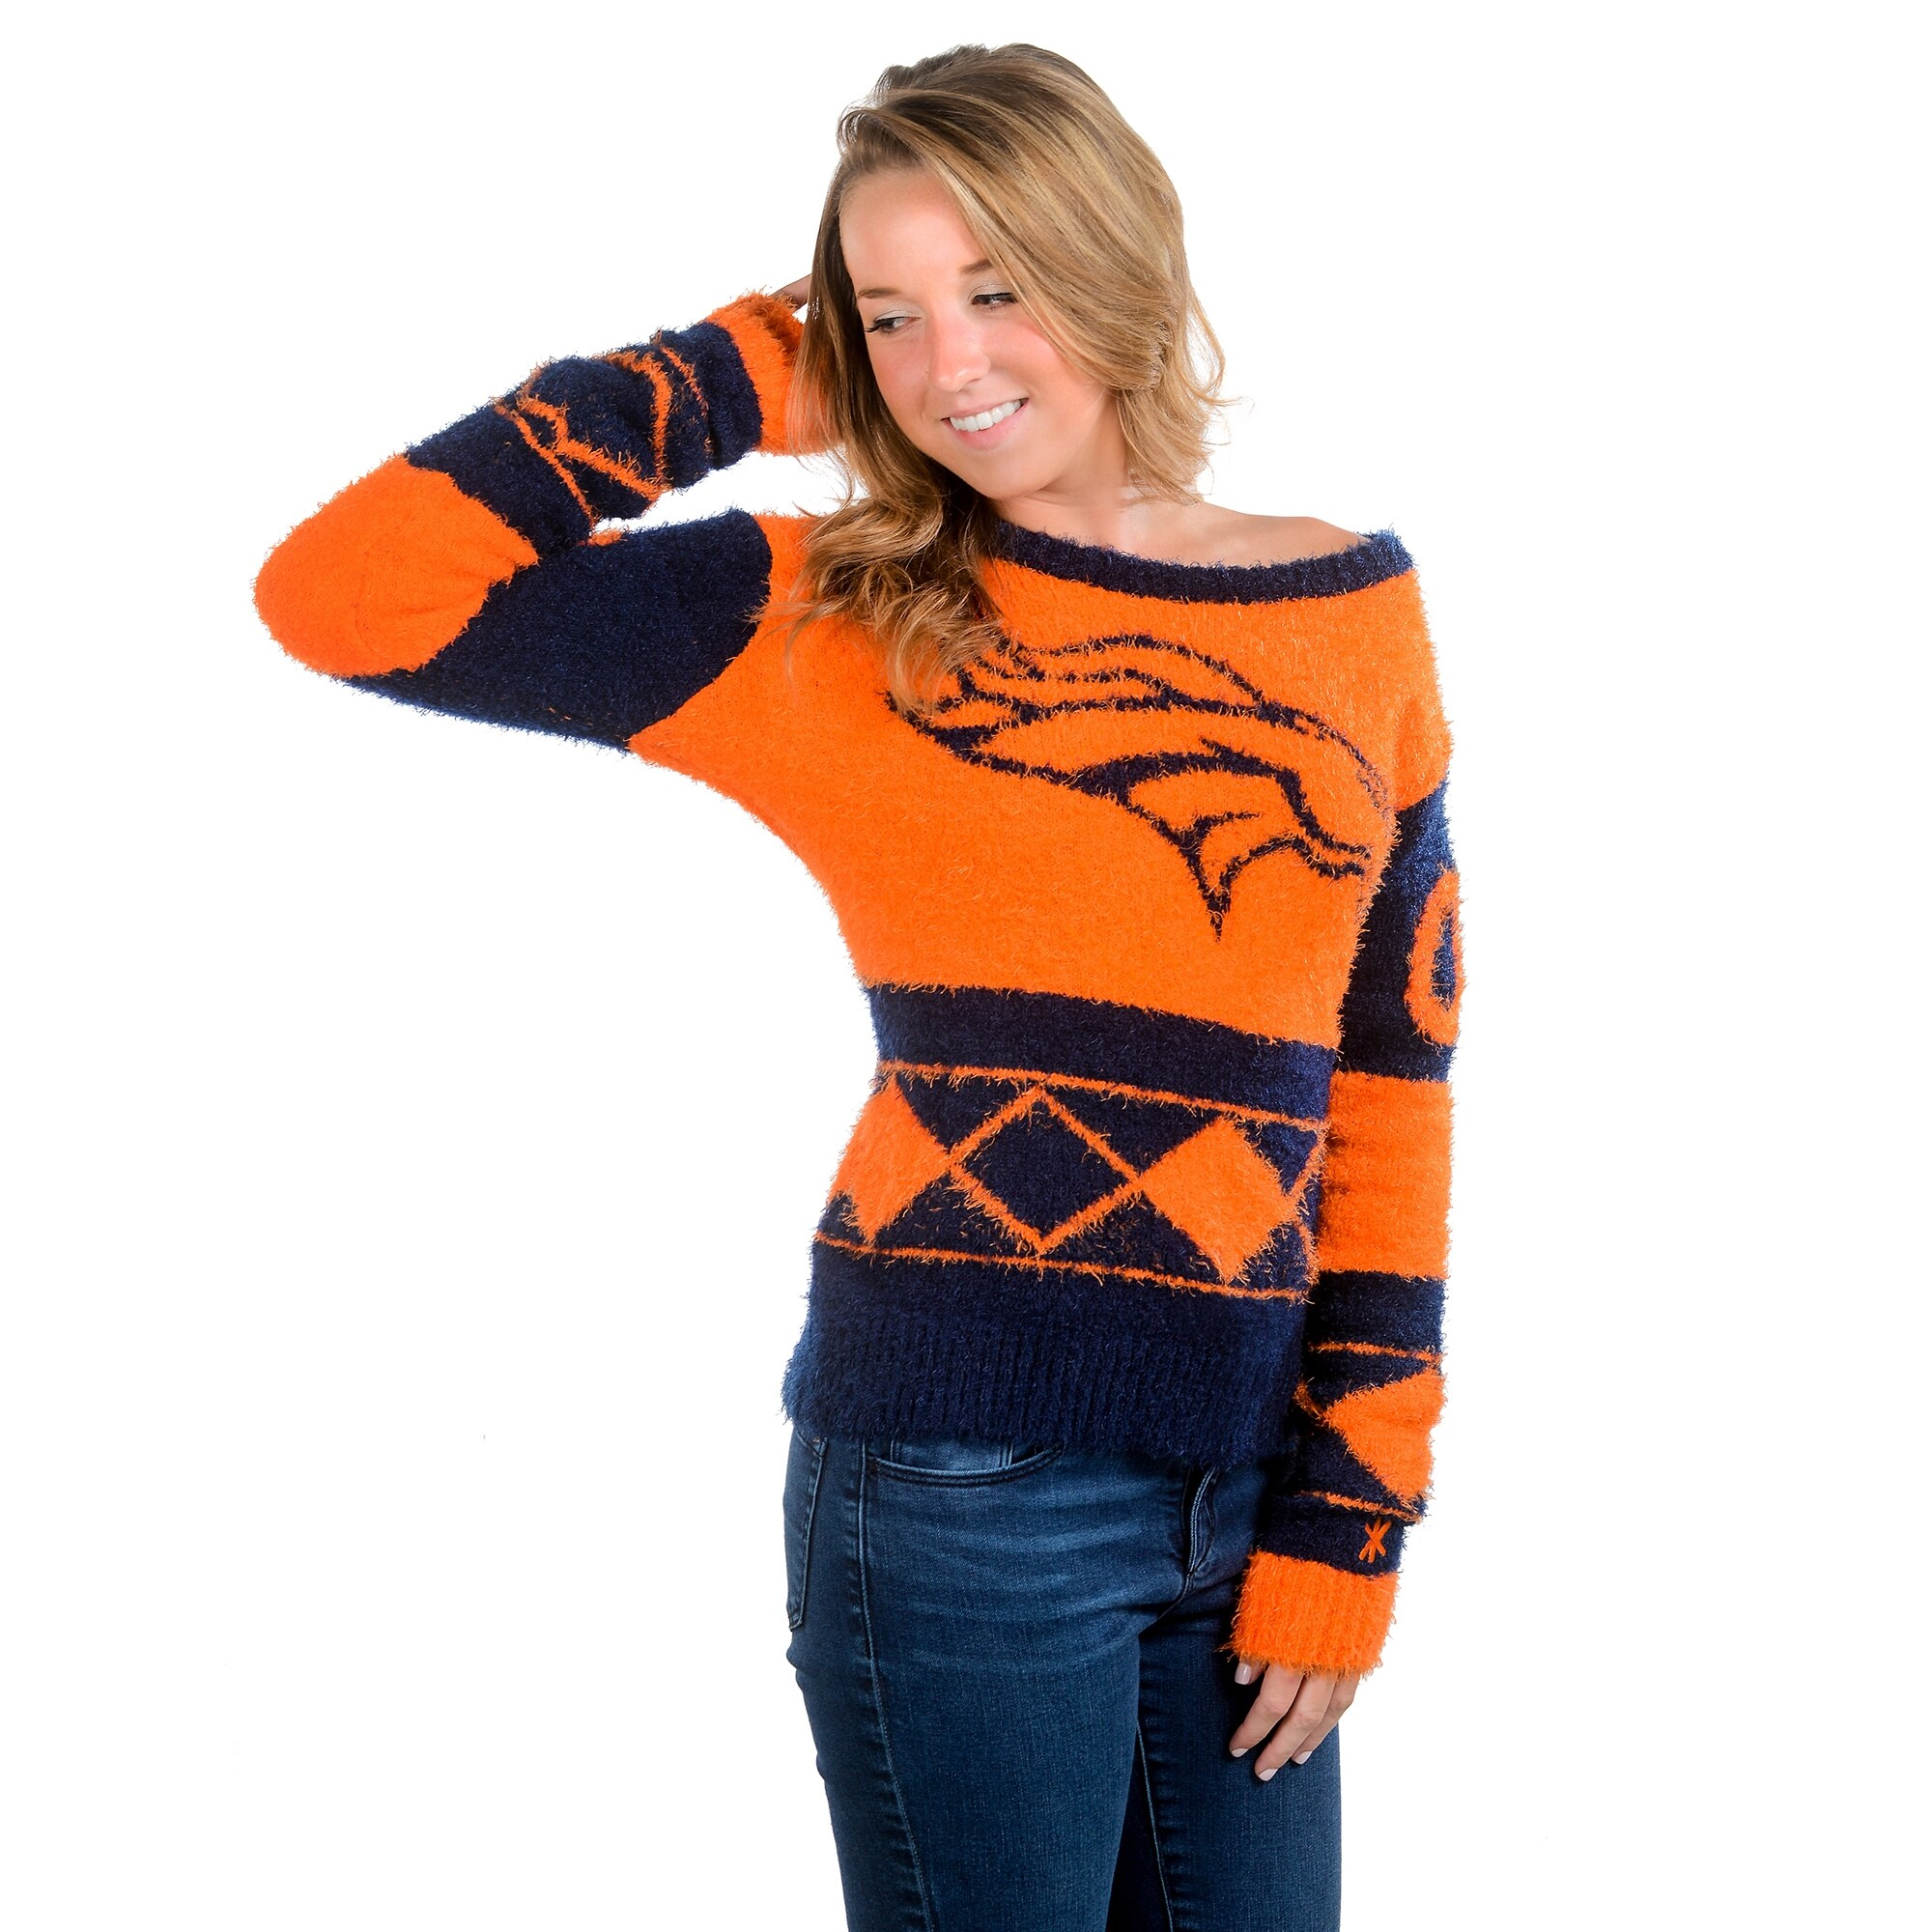 Denver Broncos Klew Women's Eyelash Crew Ugly Sweater - Navy Blue